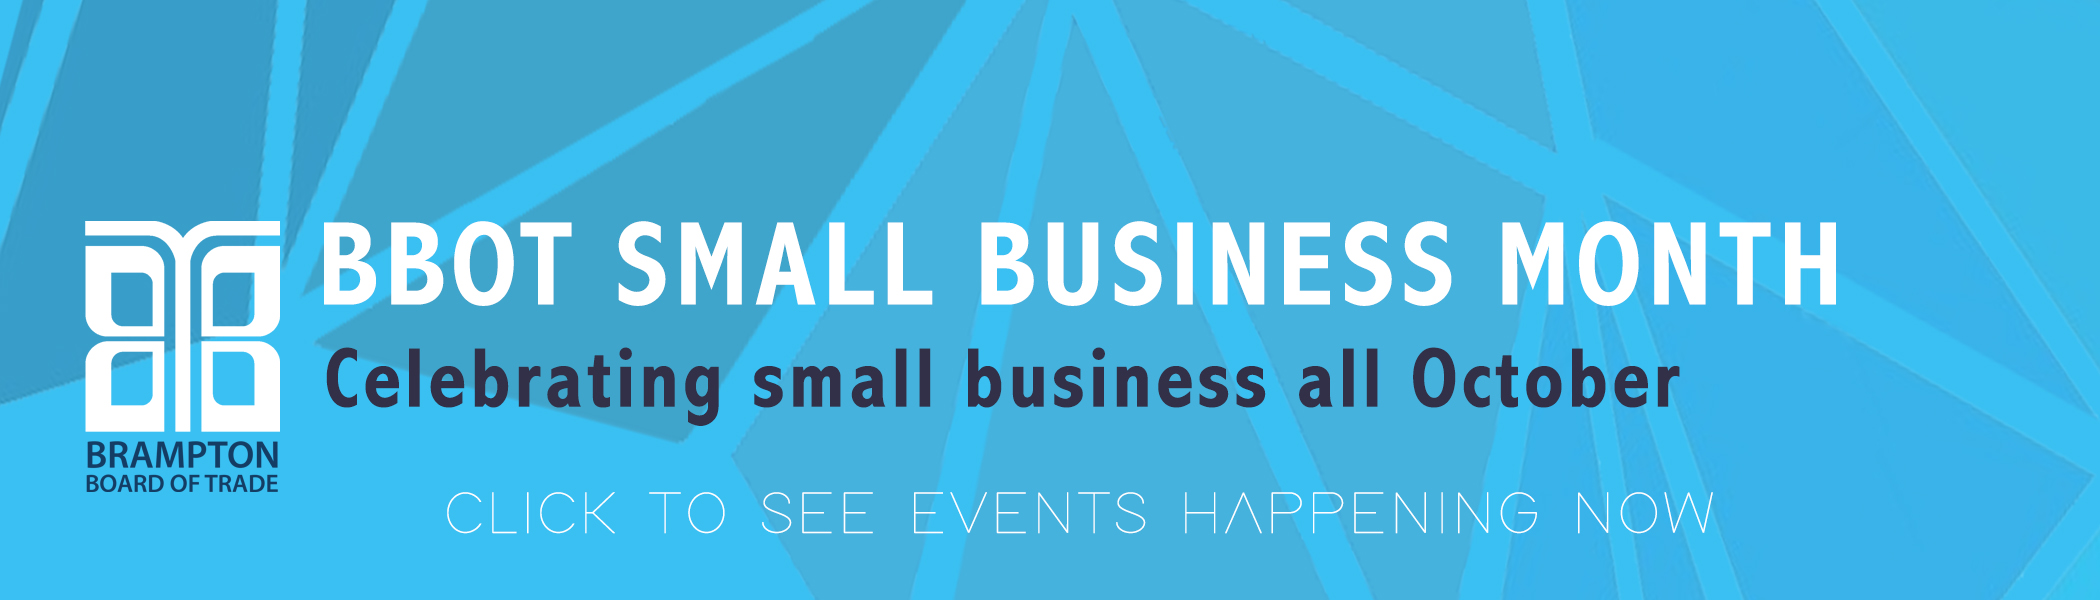 SMALL-BUSINESS-MONTH-BANNER.JPG